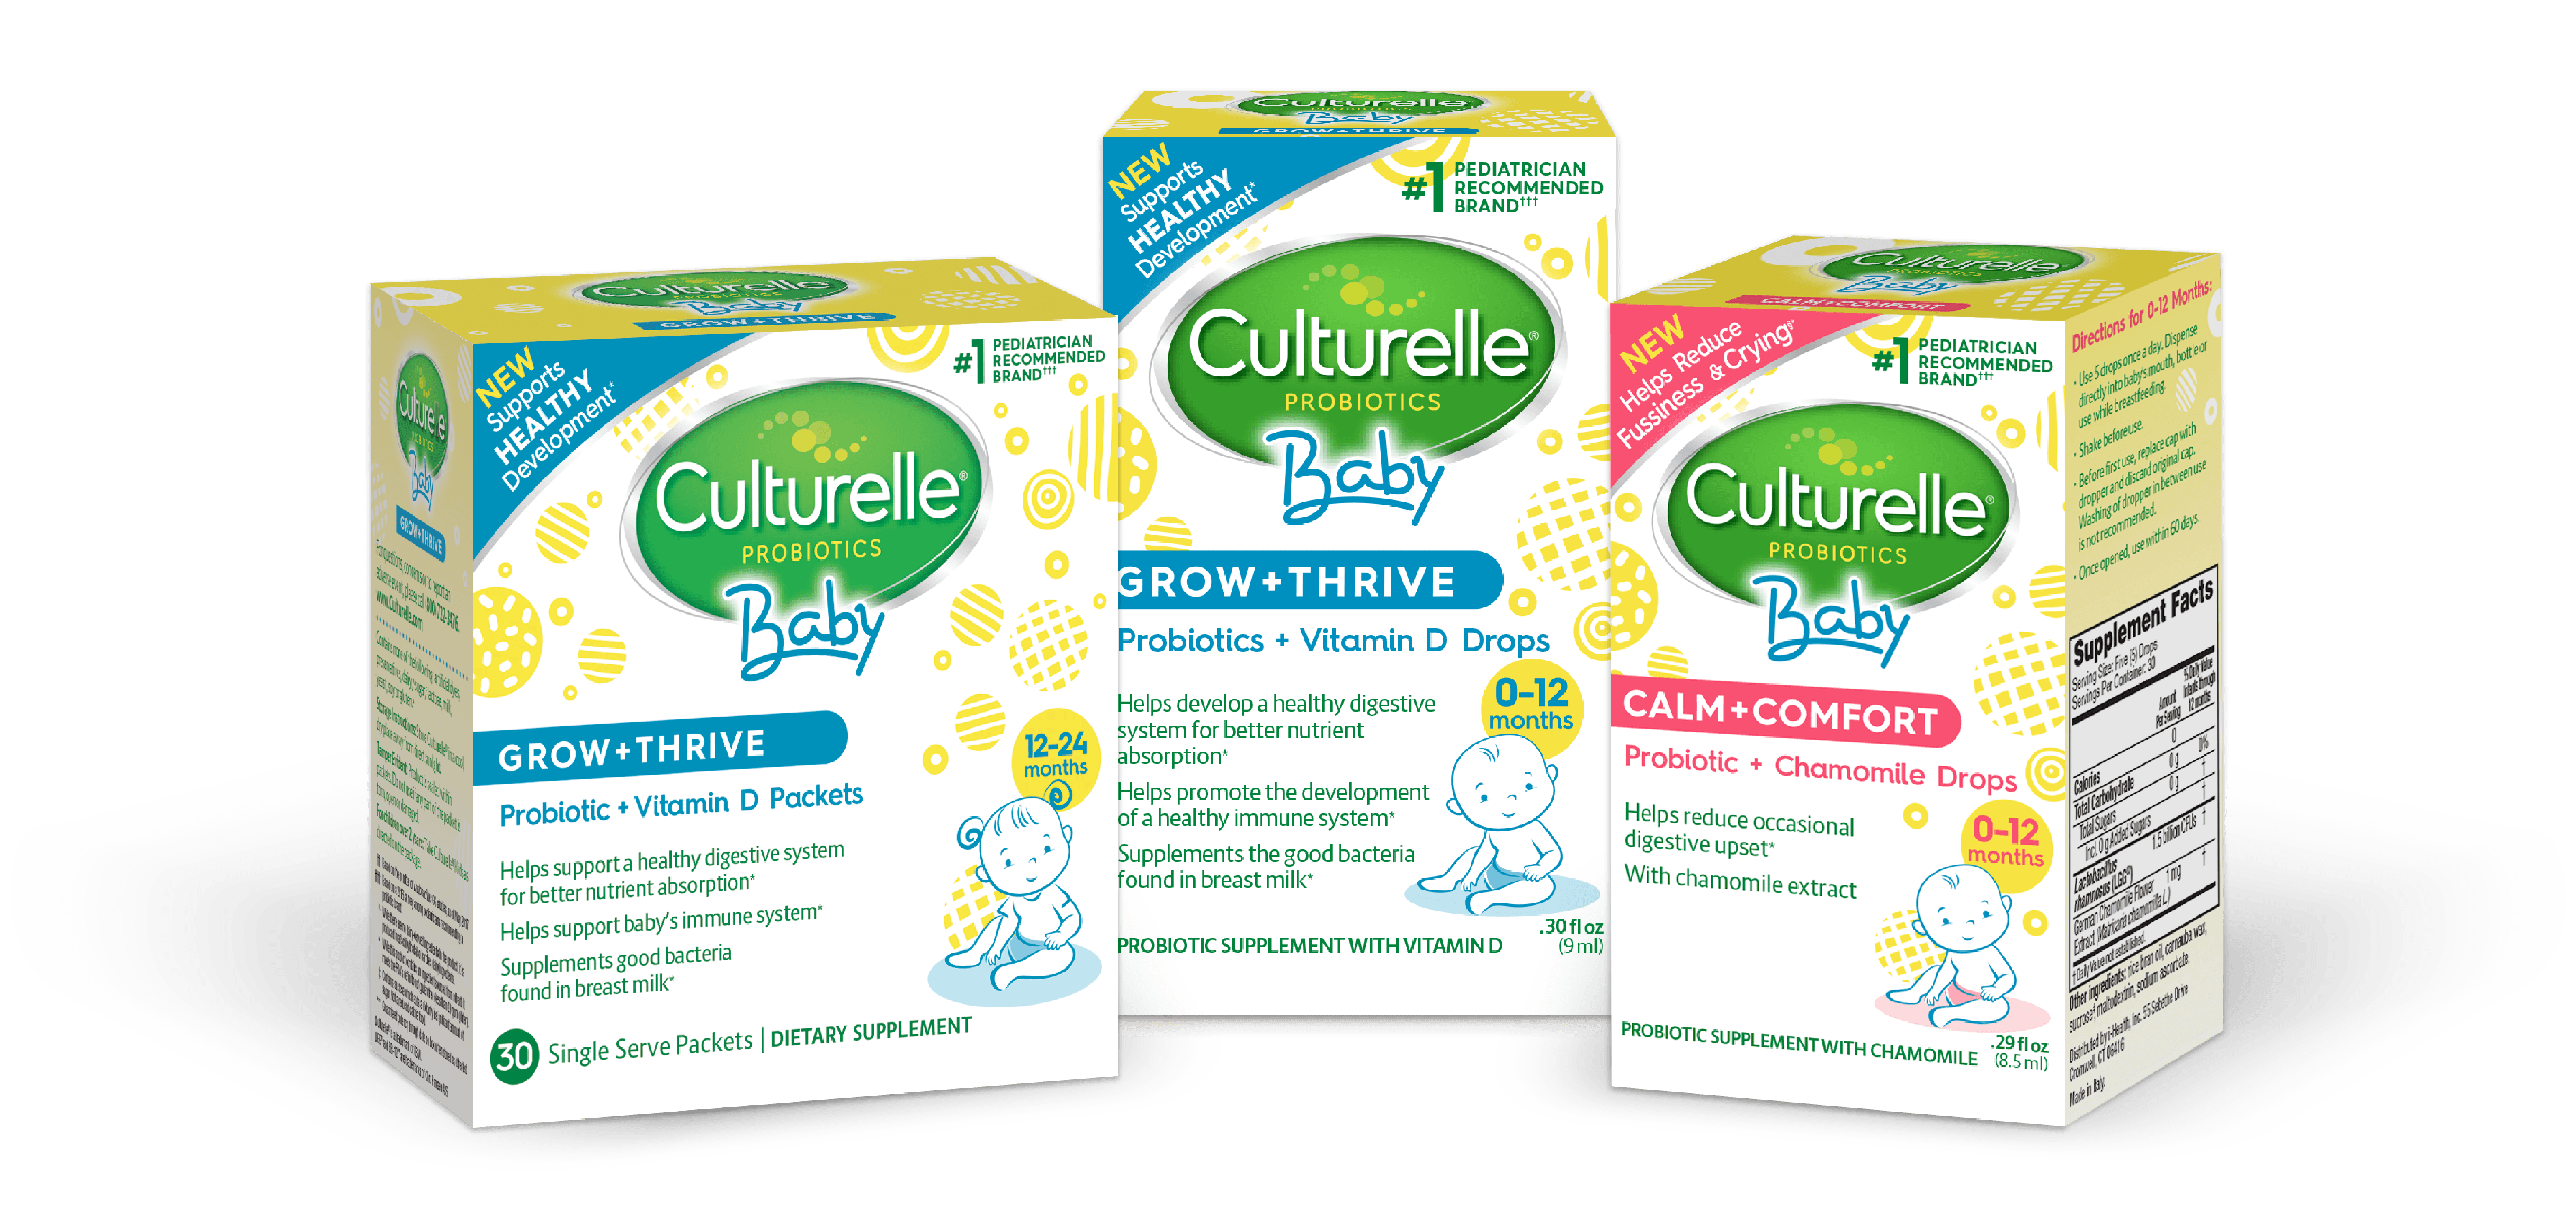 Baby probiotic product boxes